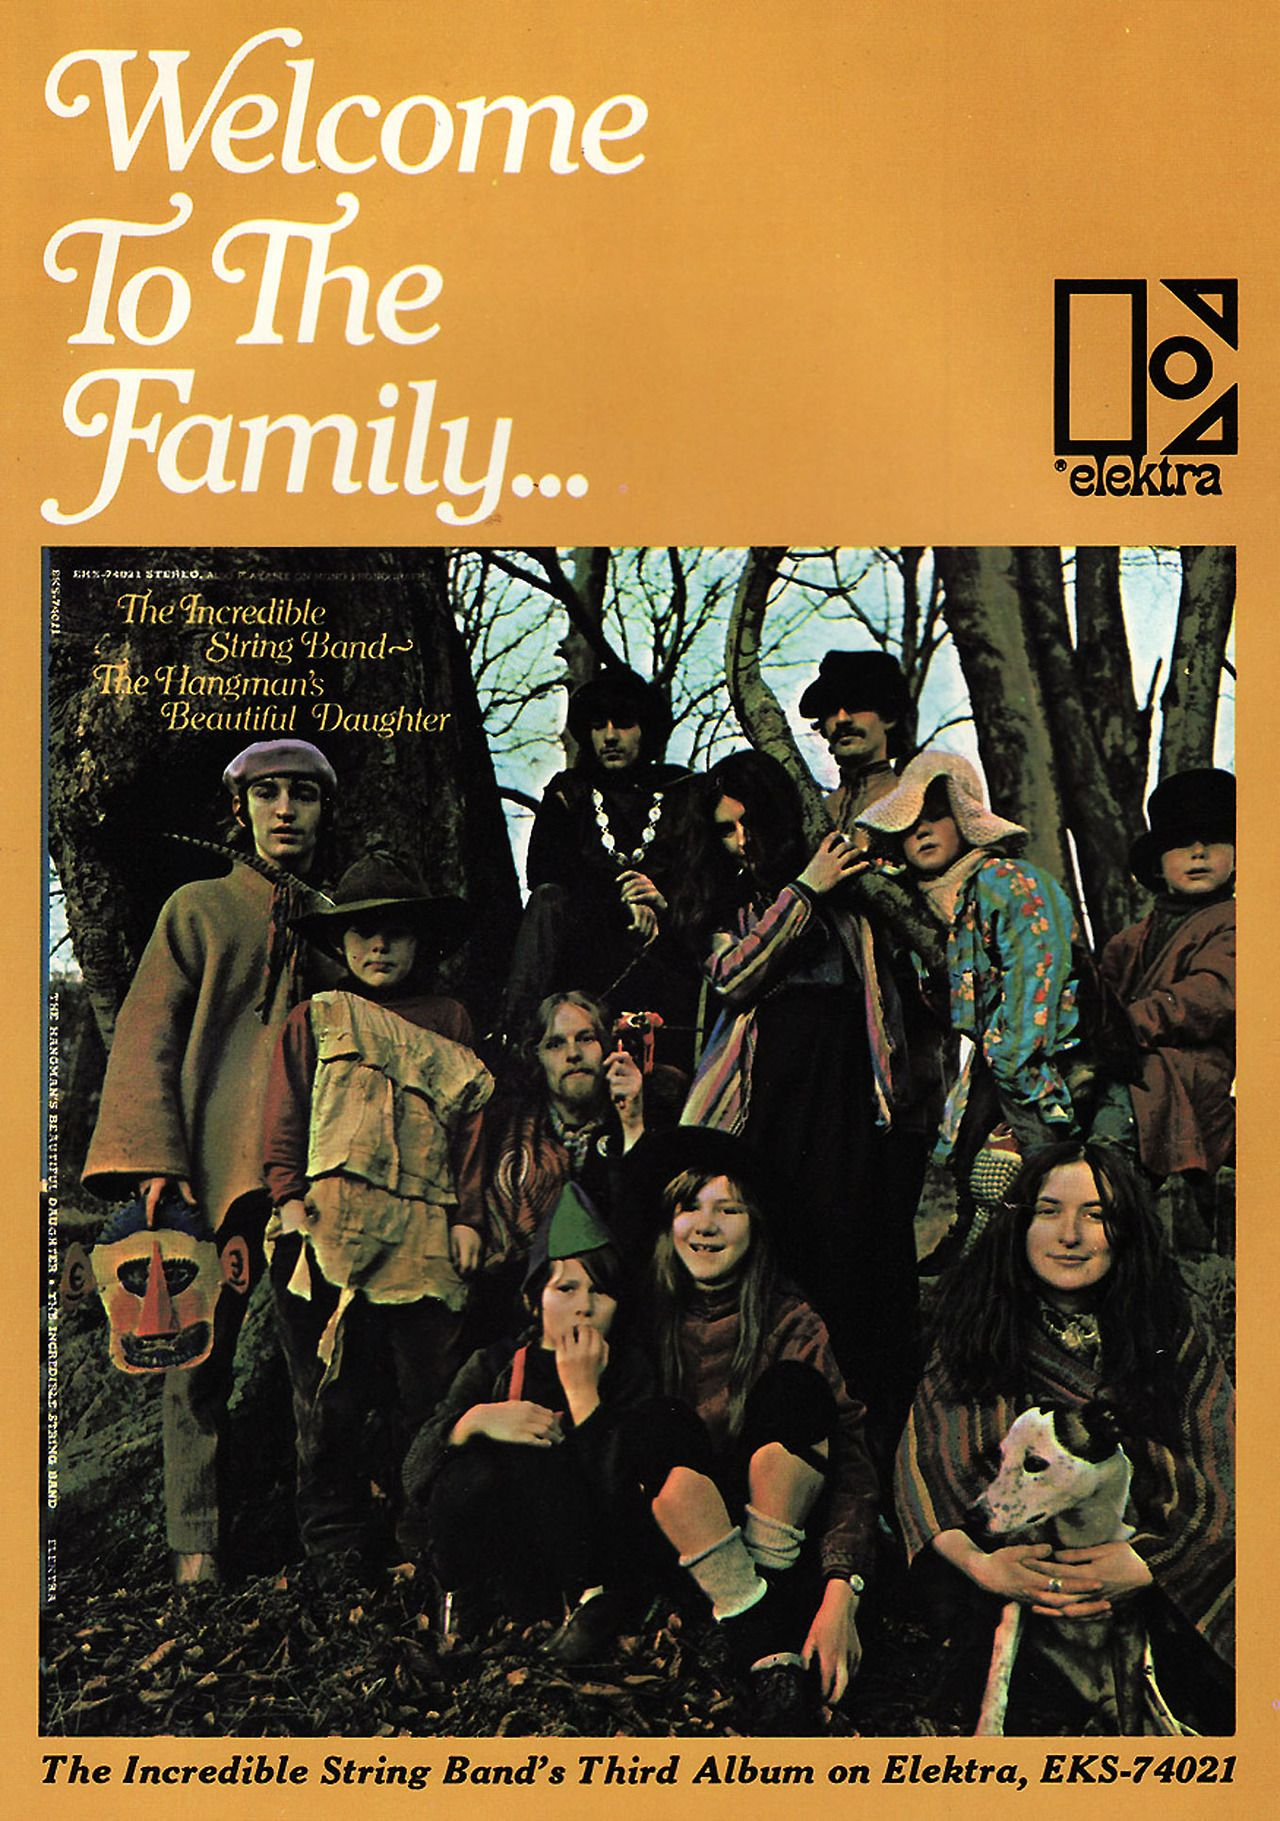 Image result for incredible string band welcome to the family